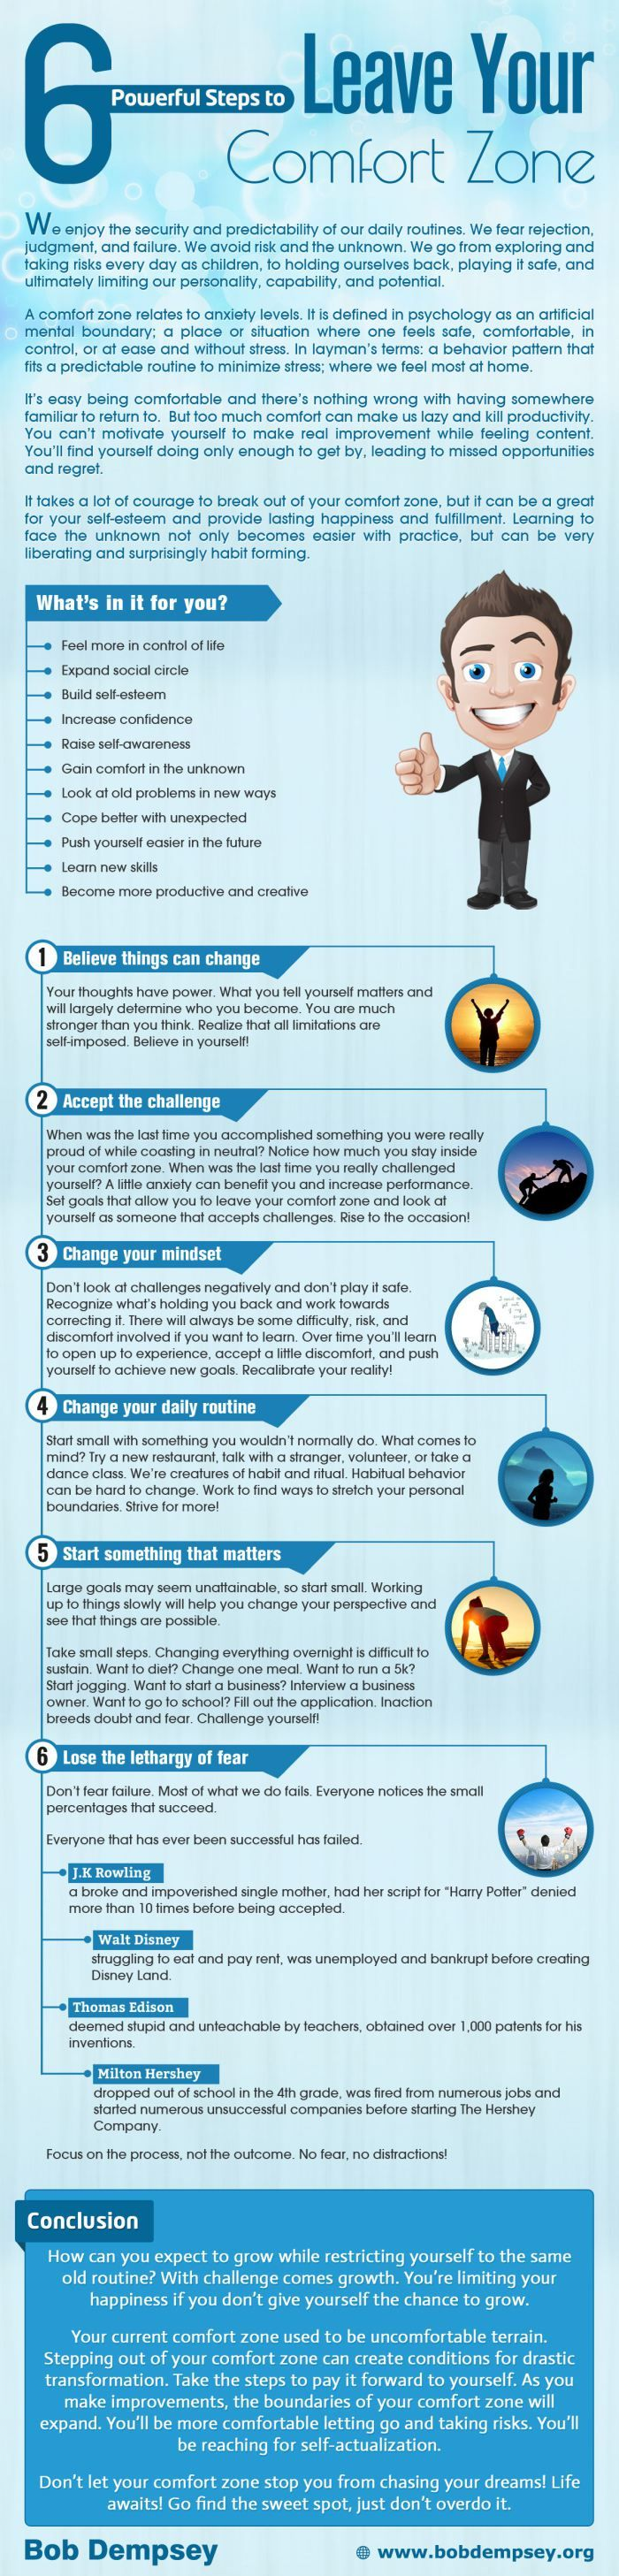 Change & the risk of change. Stuck in a rut but want to change - Leave your Comfort Zone: 6  Steps/ways/ideas to help you move forward & leave it